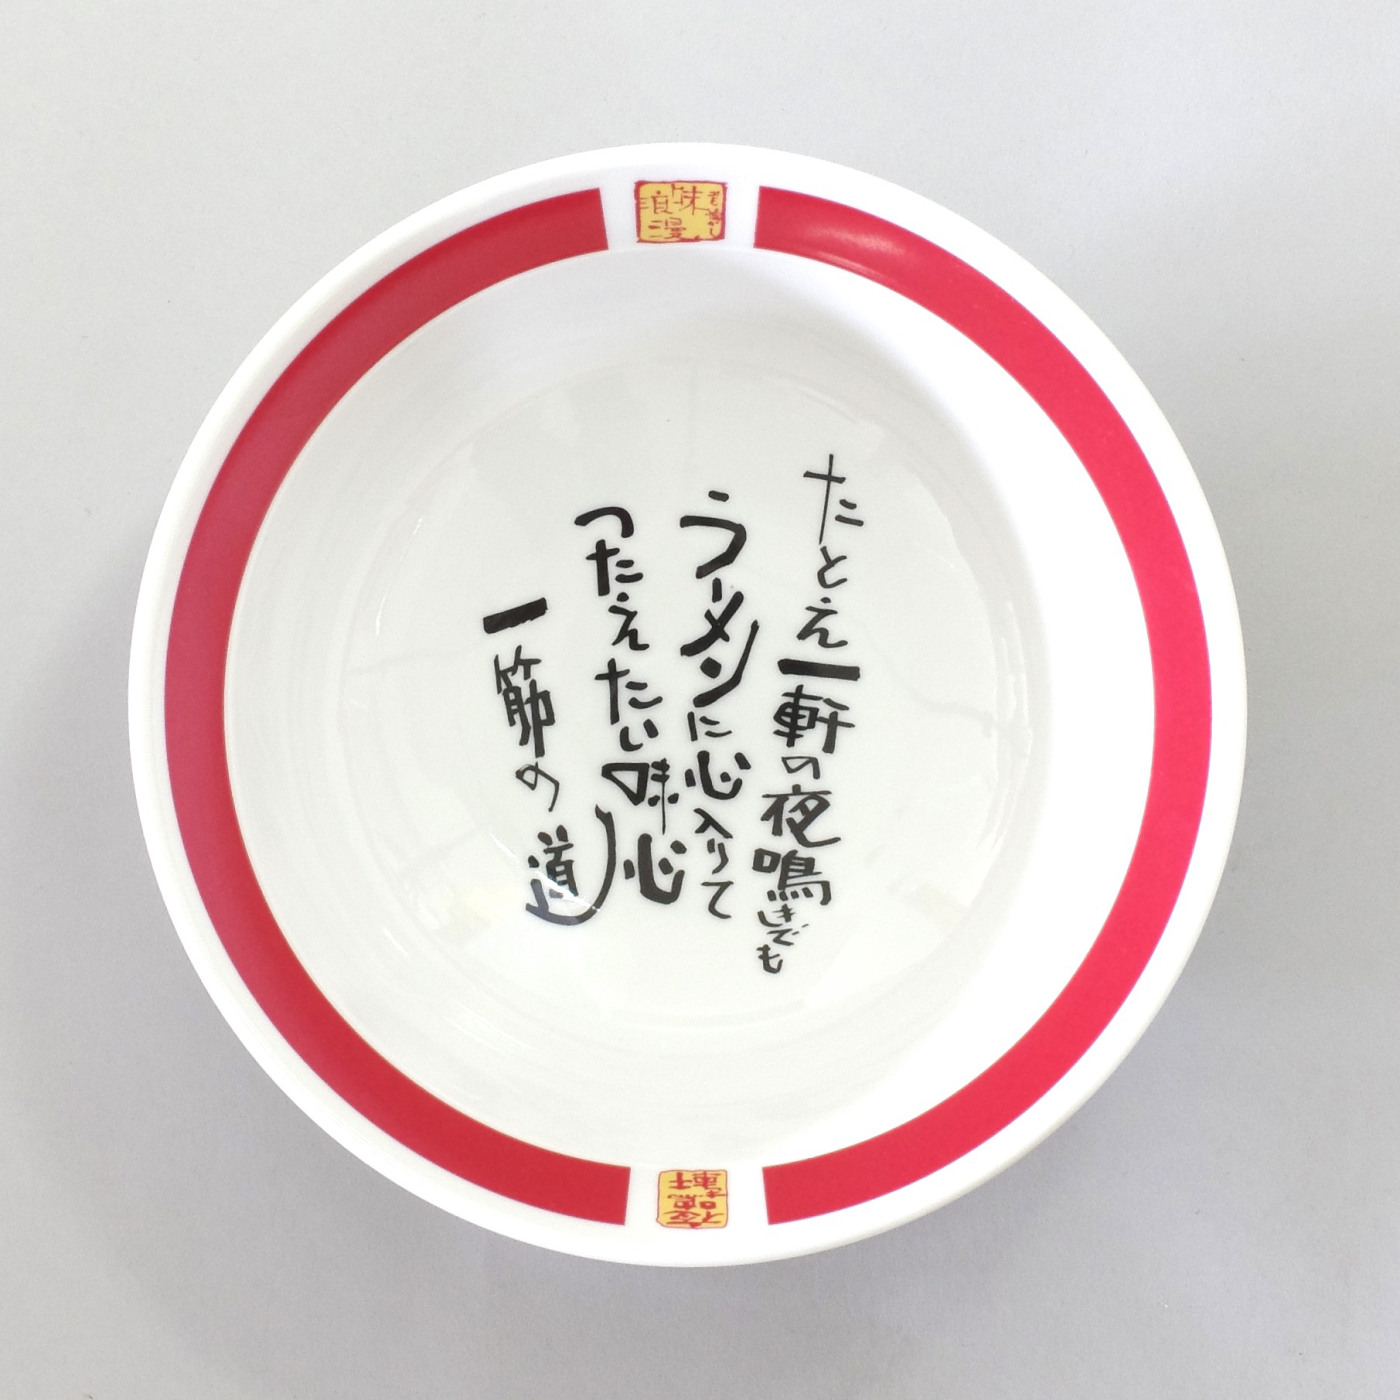 Customized Ramen Bowl (Logo and Message)